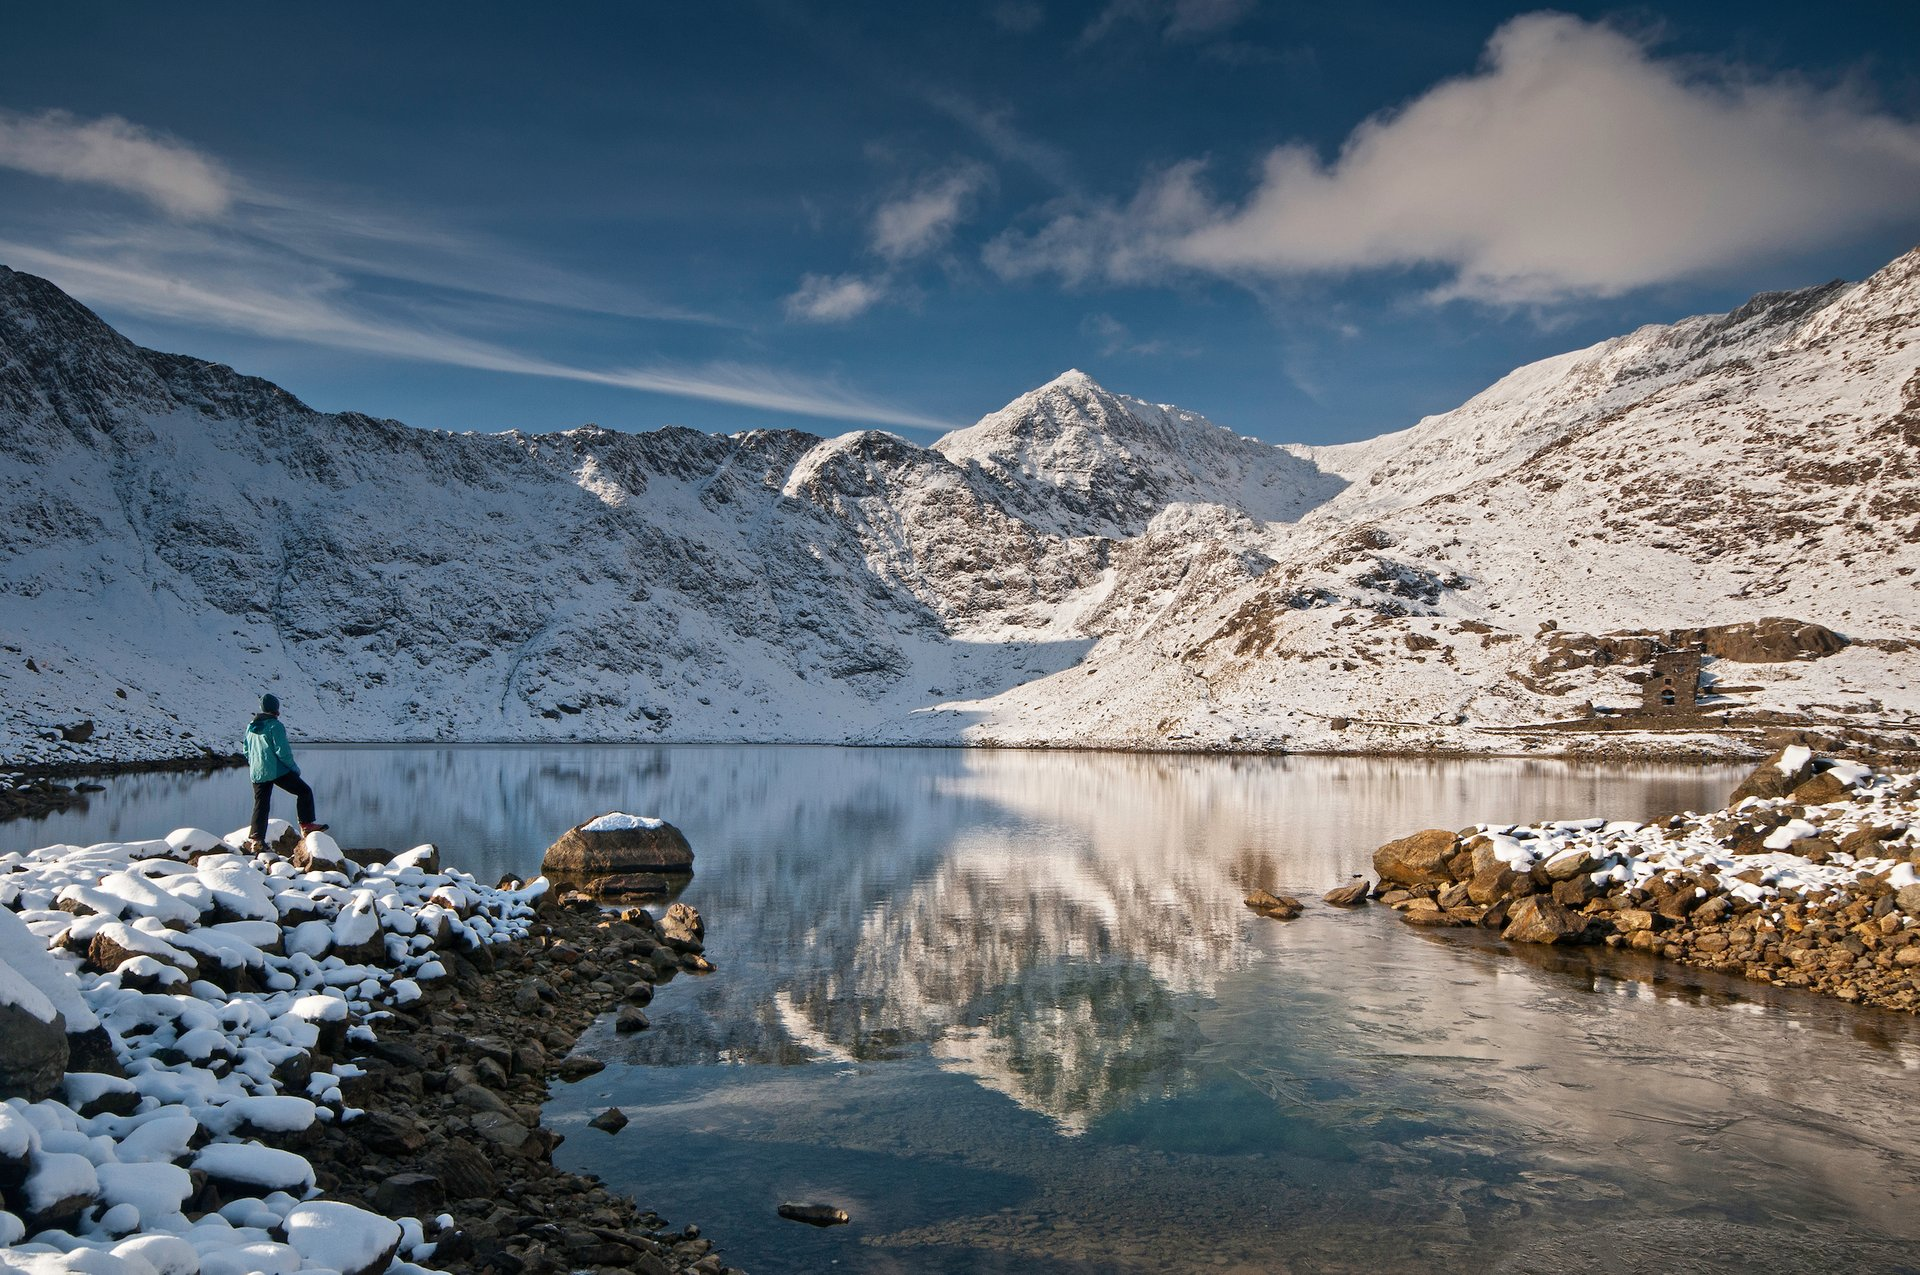 Walker looking towards snow-covered summit of Snowdon (Yr Wyddfa) from Llyn Llydaw lake 2020